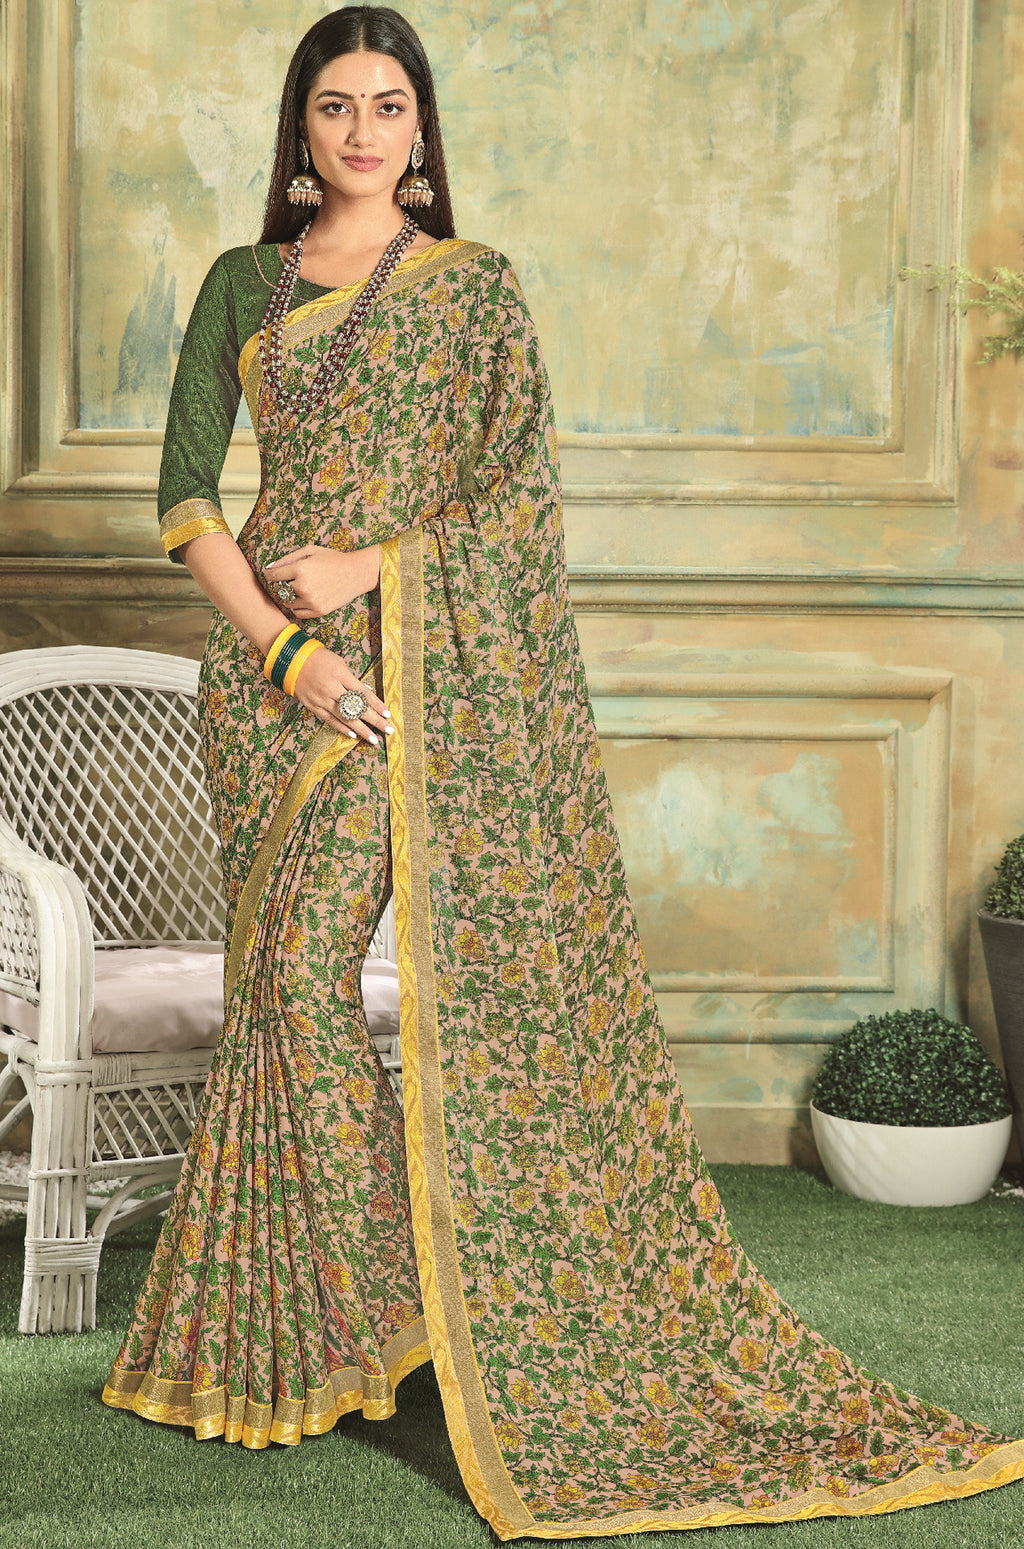 Green Color Georgette Youthful Kitty Party Sarees NYF-5670